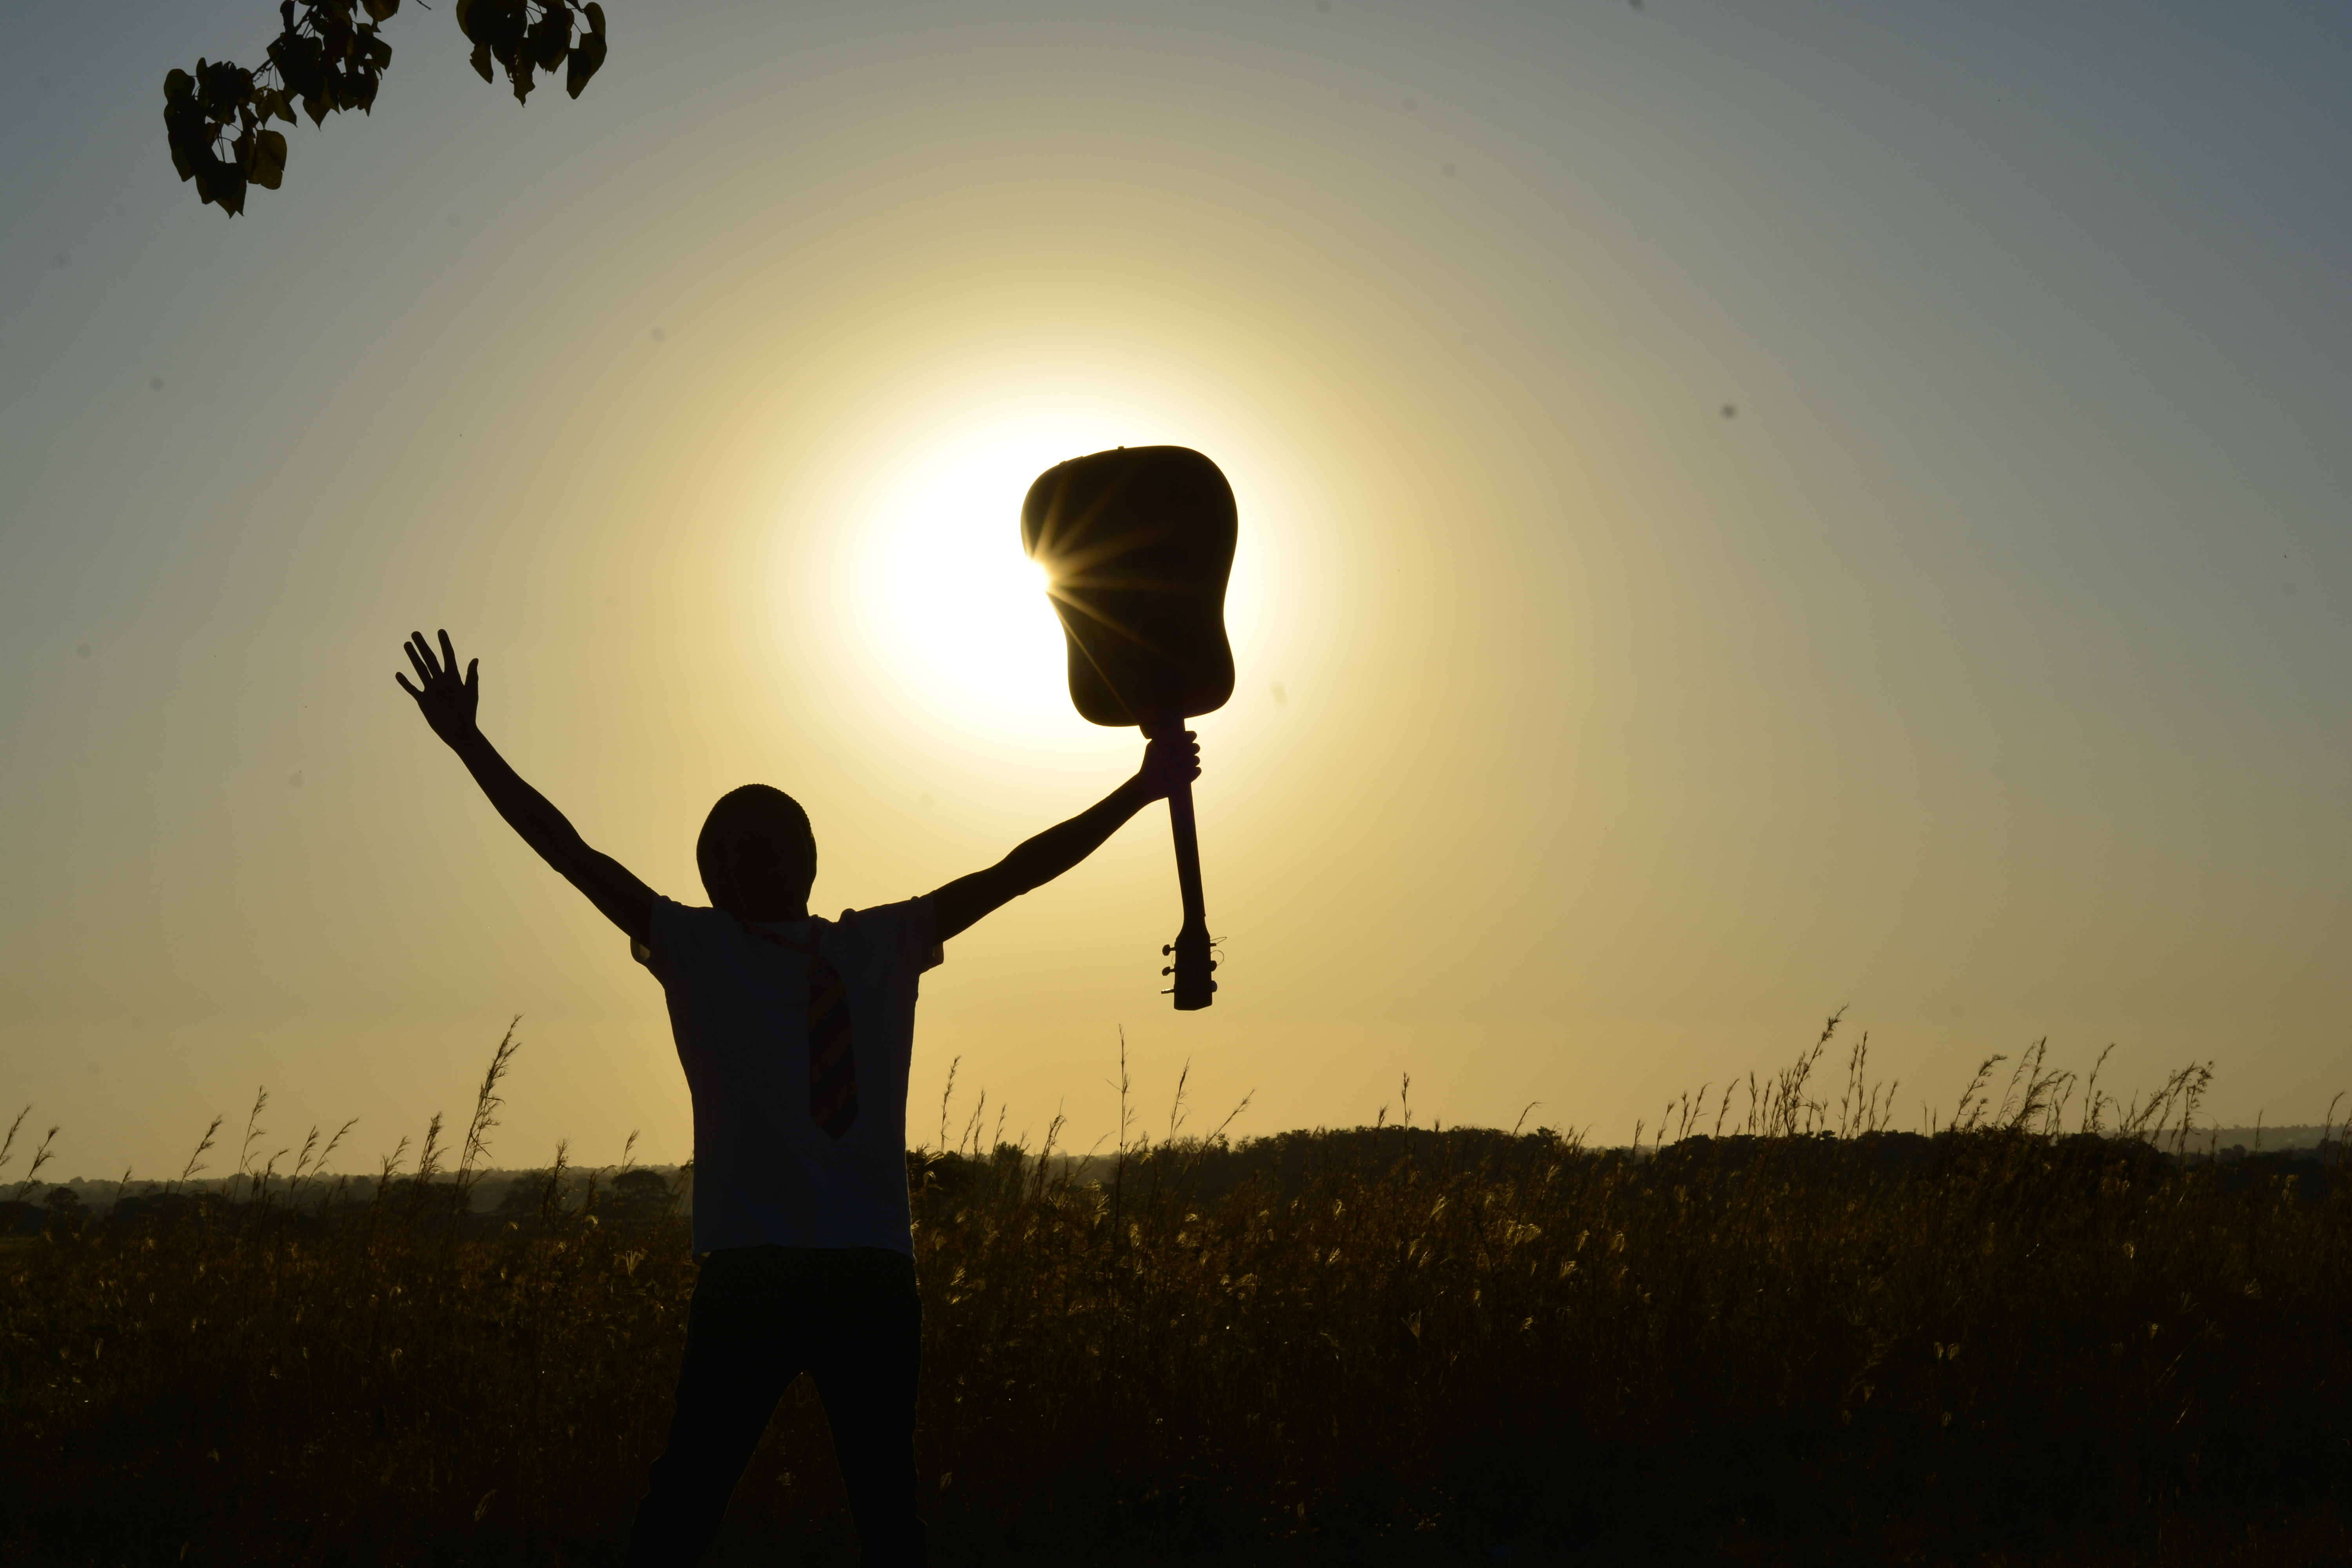 Silhouette of Man Holding Guitar on Plant Fields at Daytime